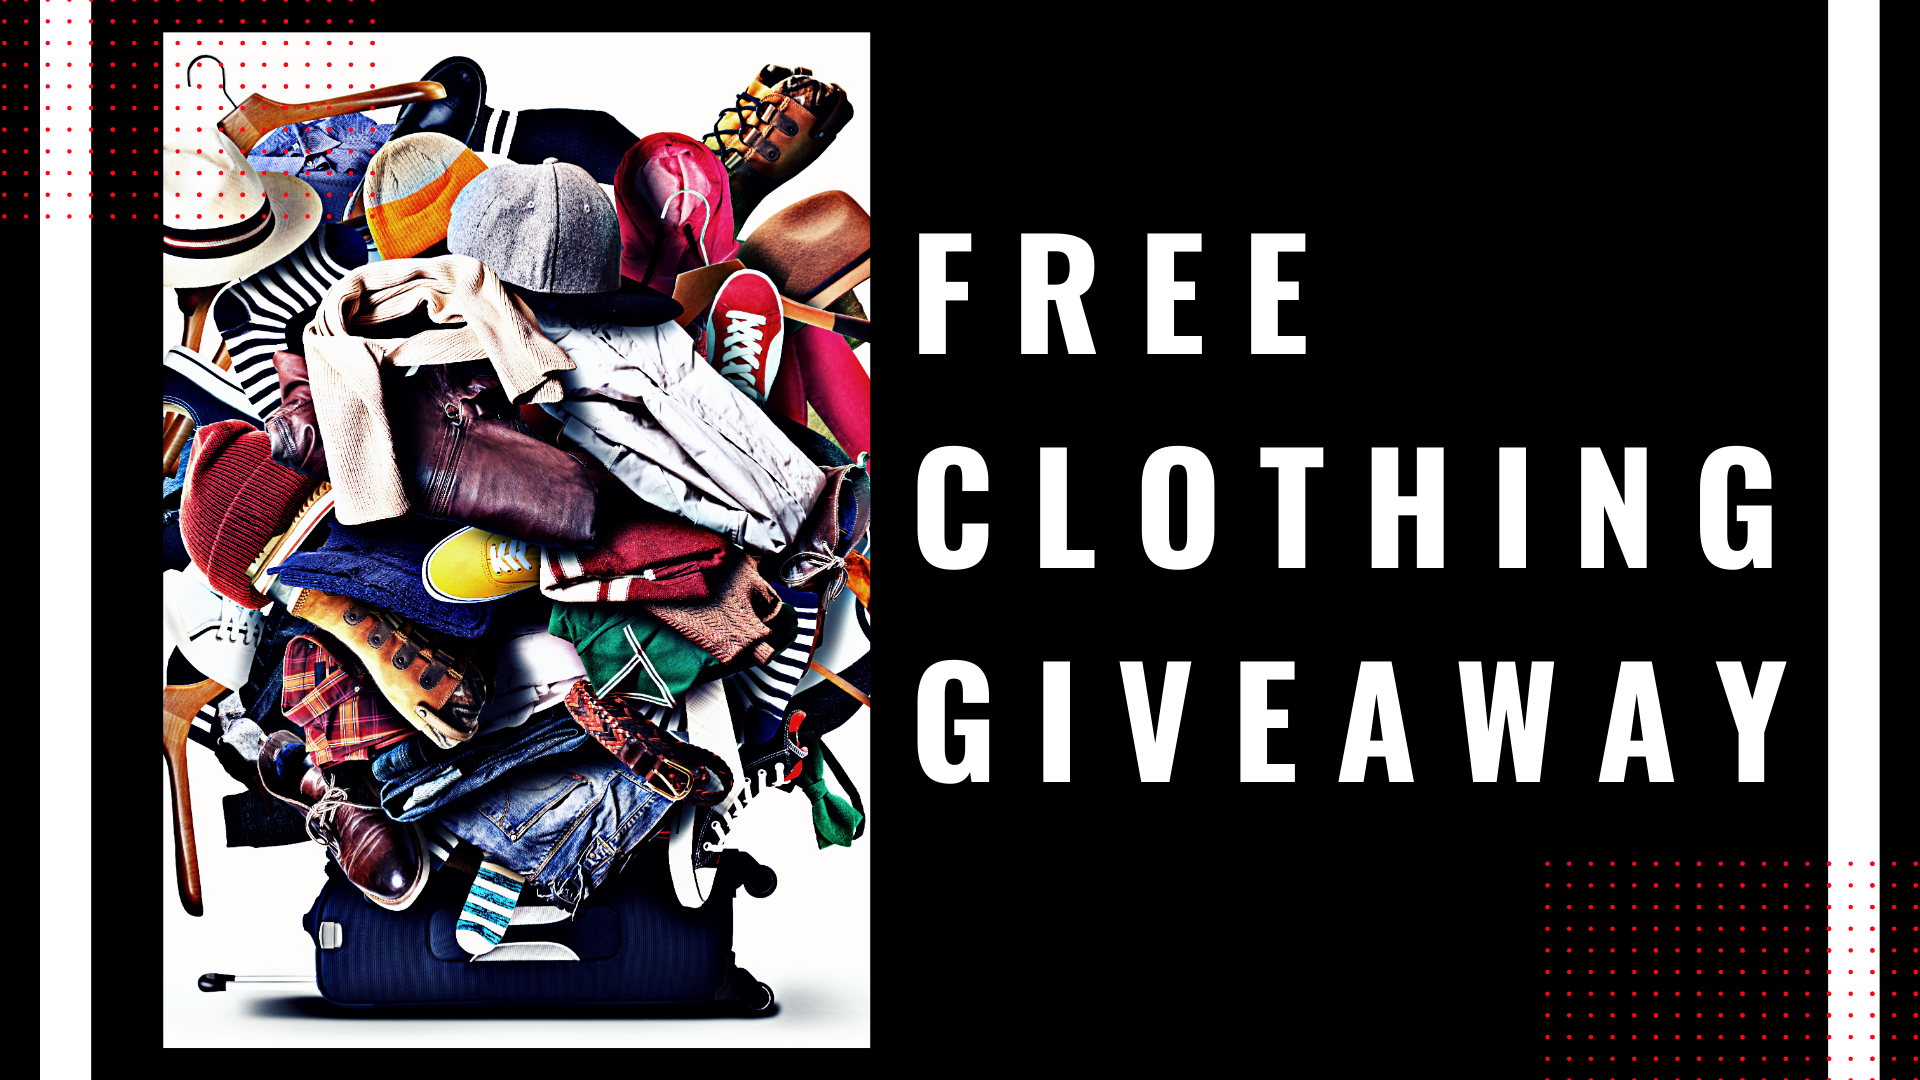 Free Clothing Giveaway_Dec19